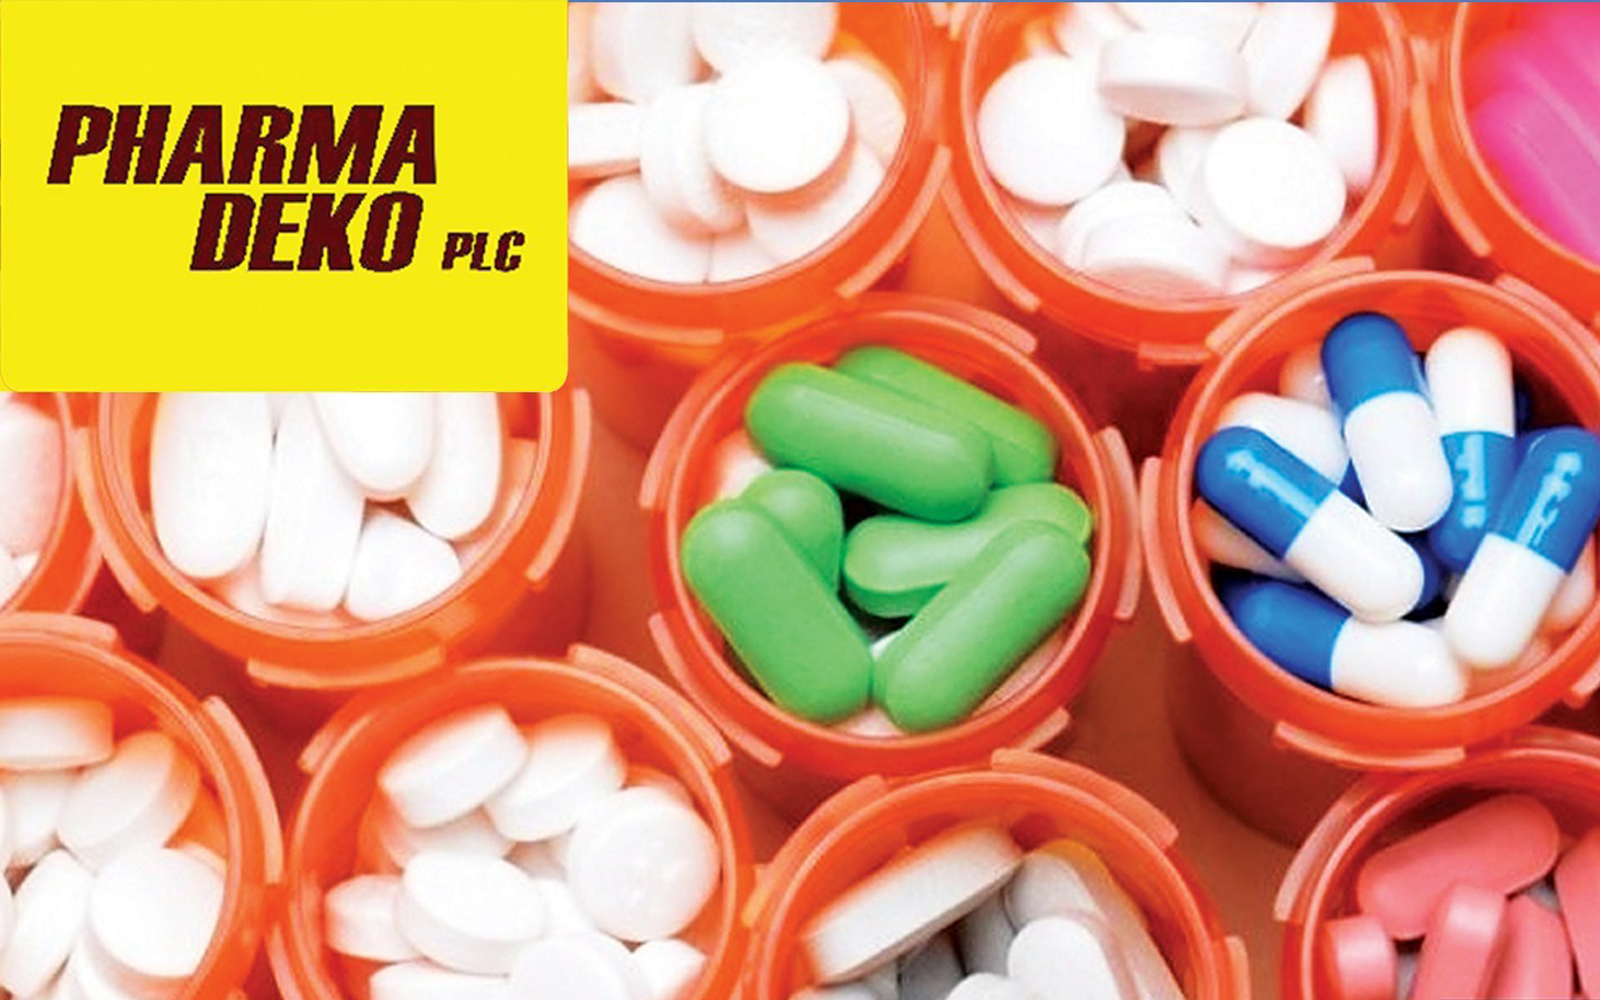 49th Annual General Meeting of PHARMA DEKO PLC